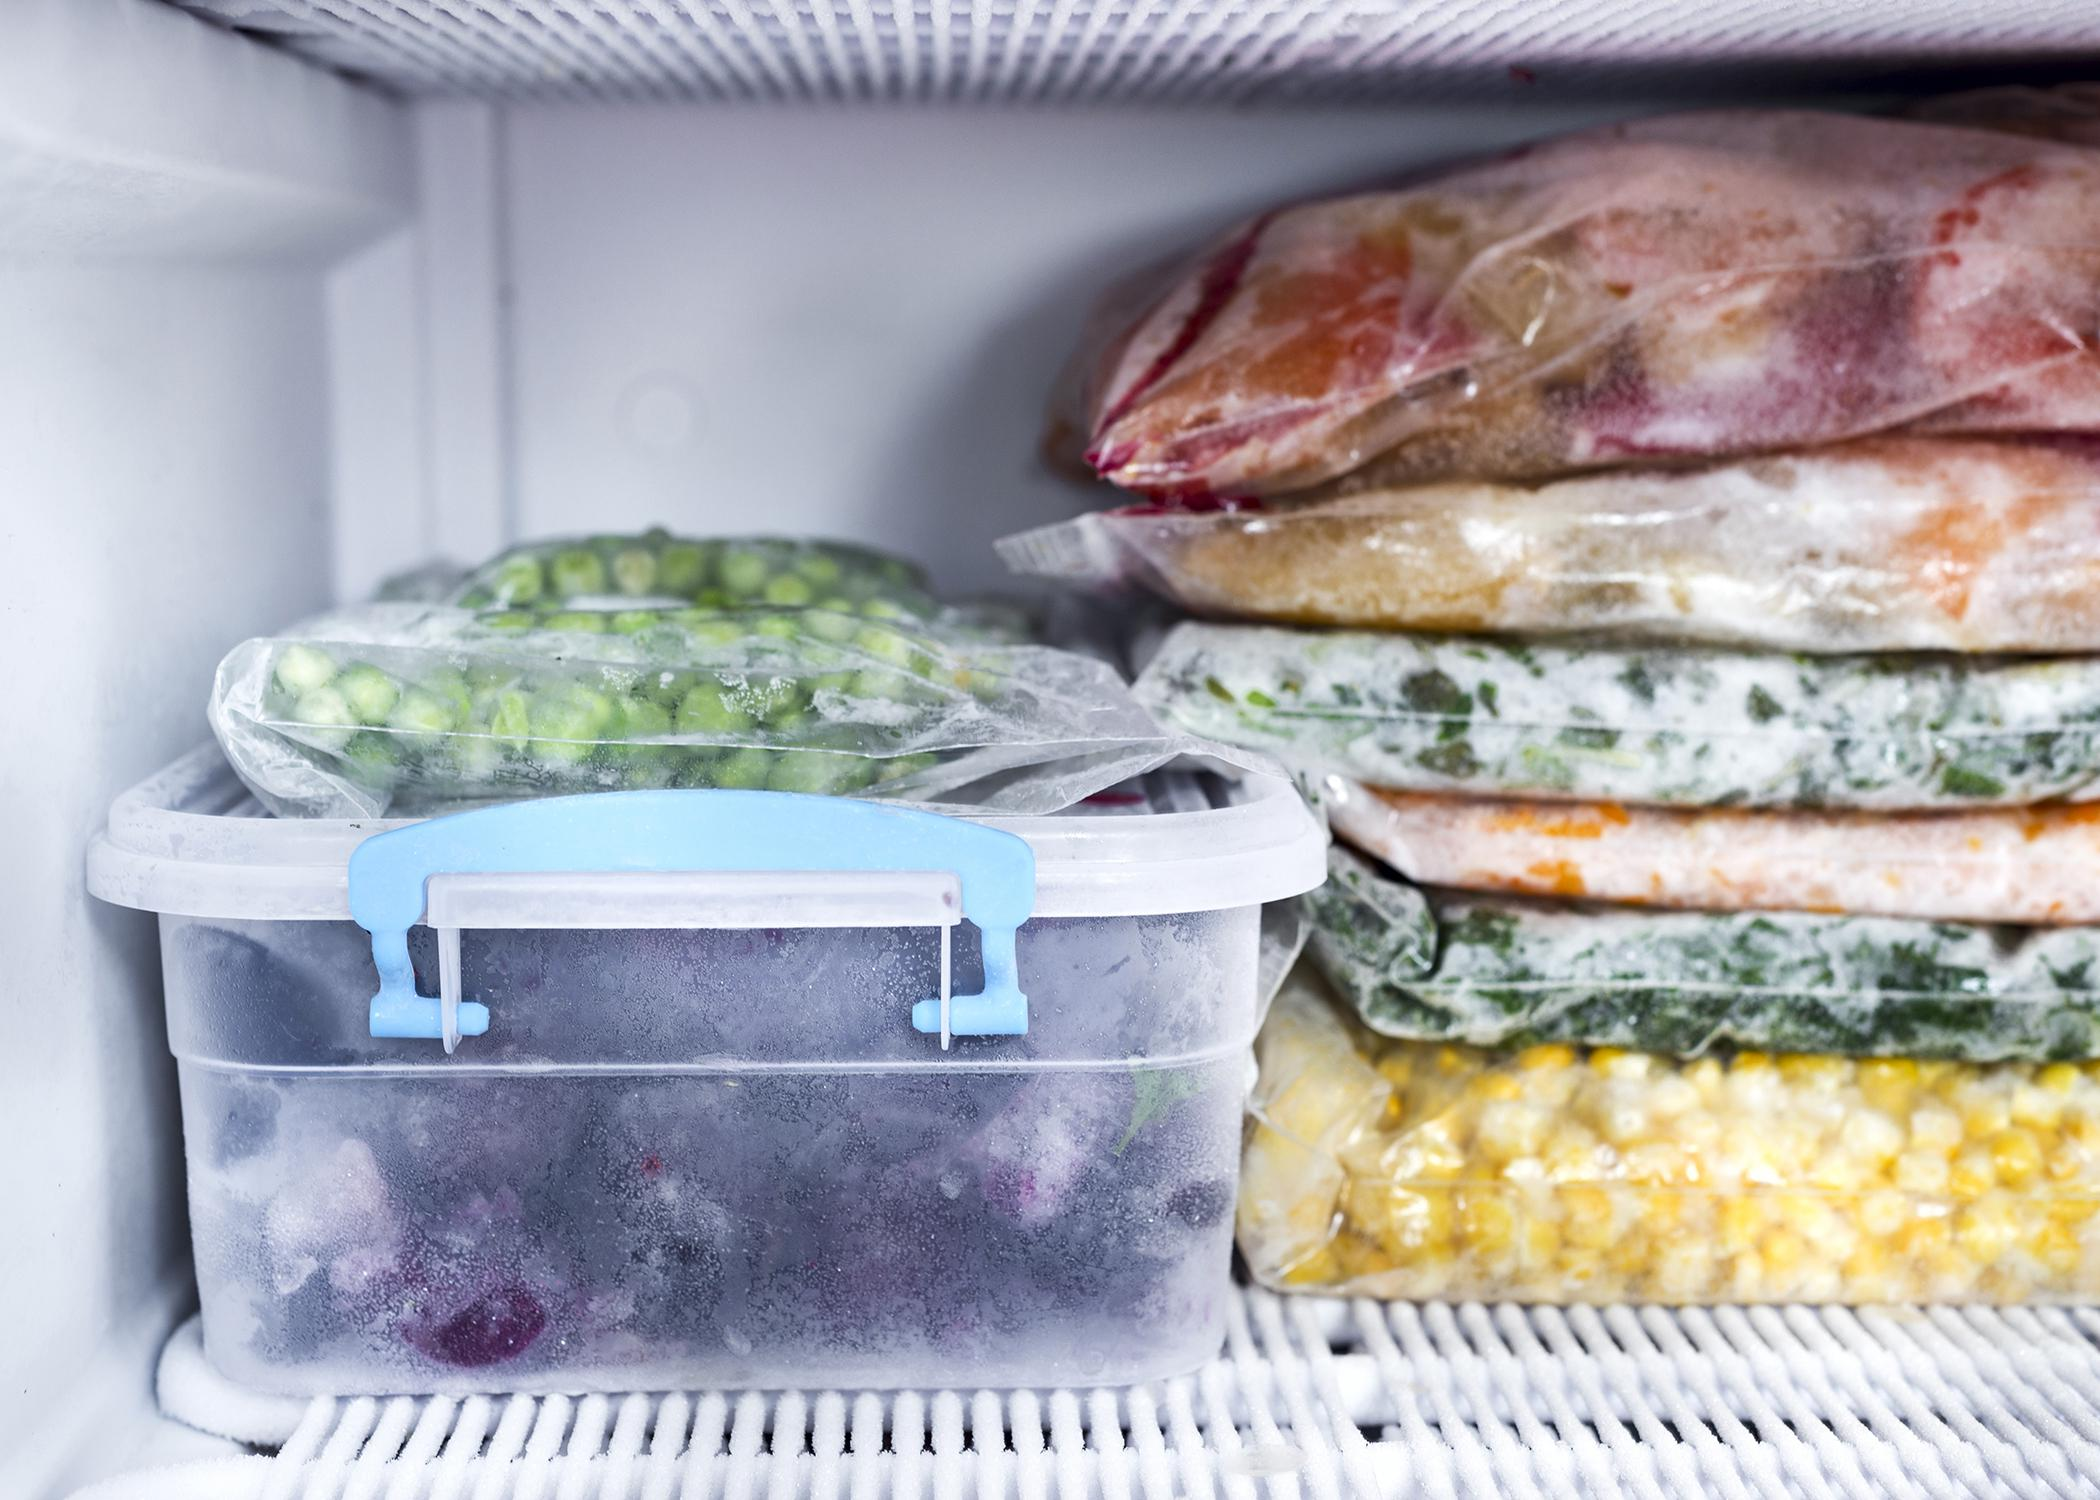 Frozen foods sit in the freezer.